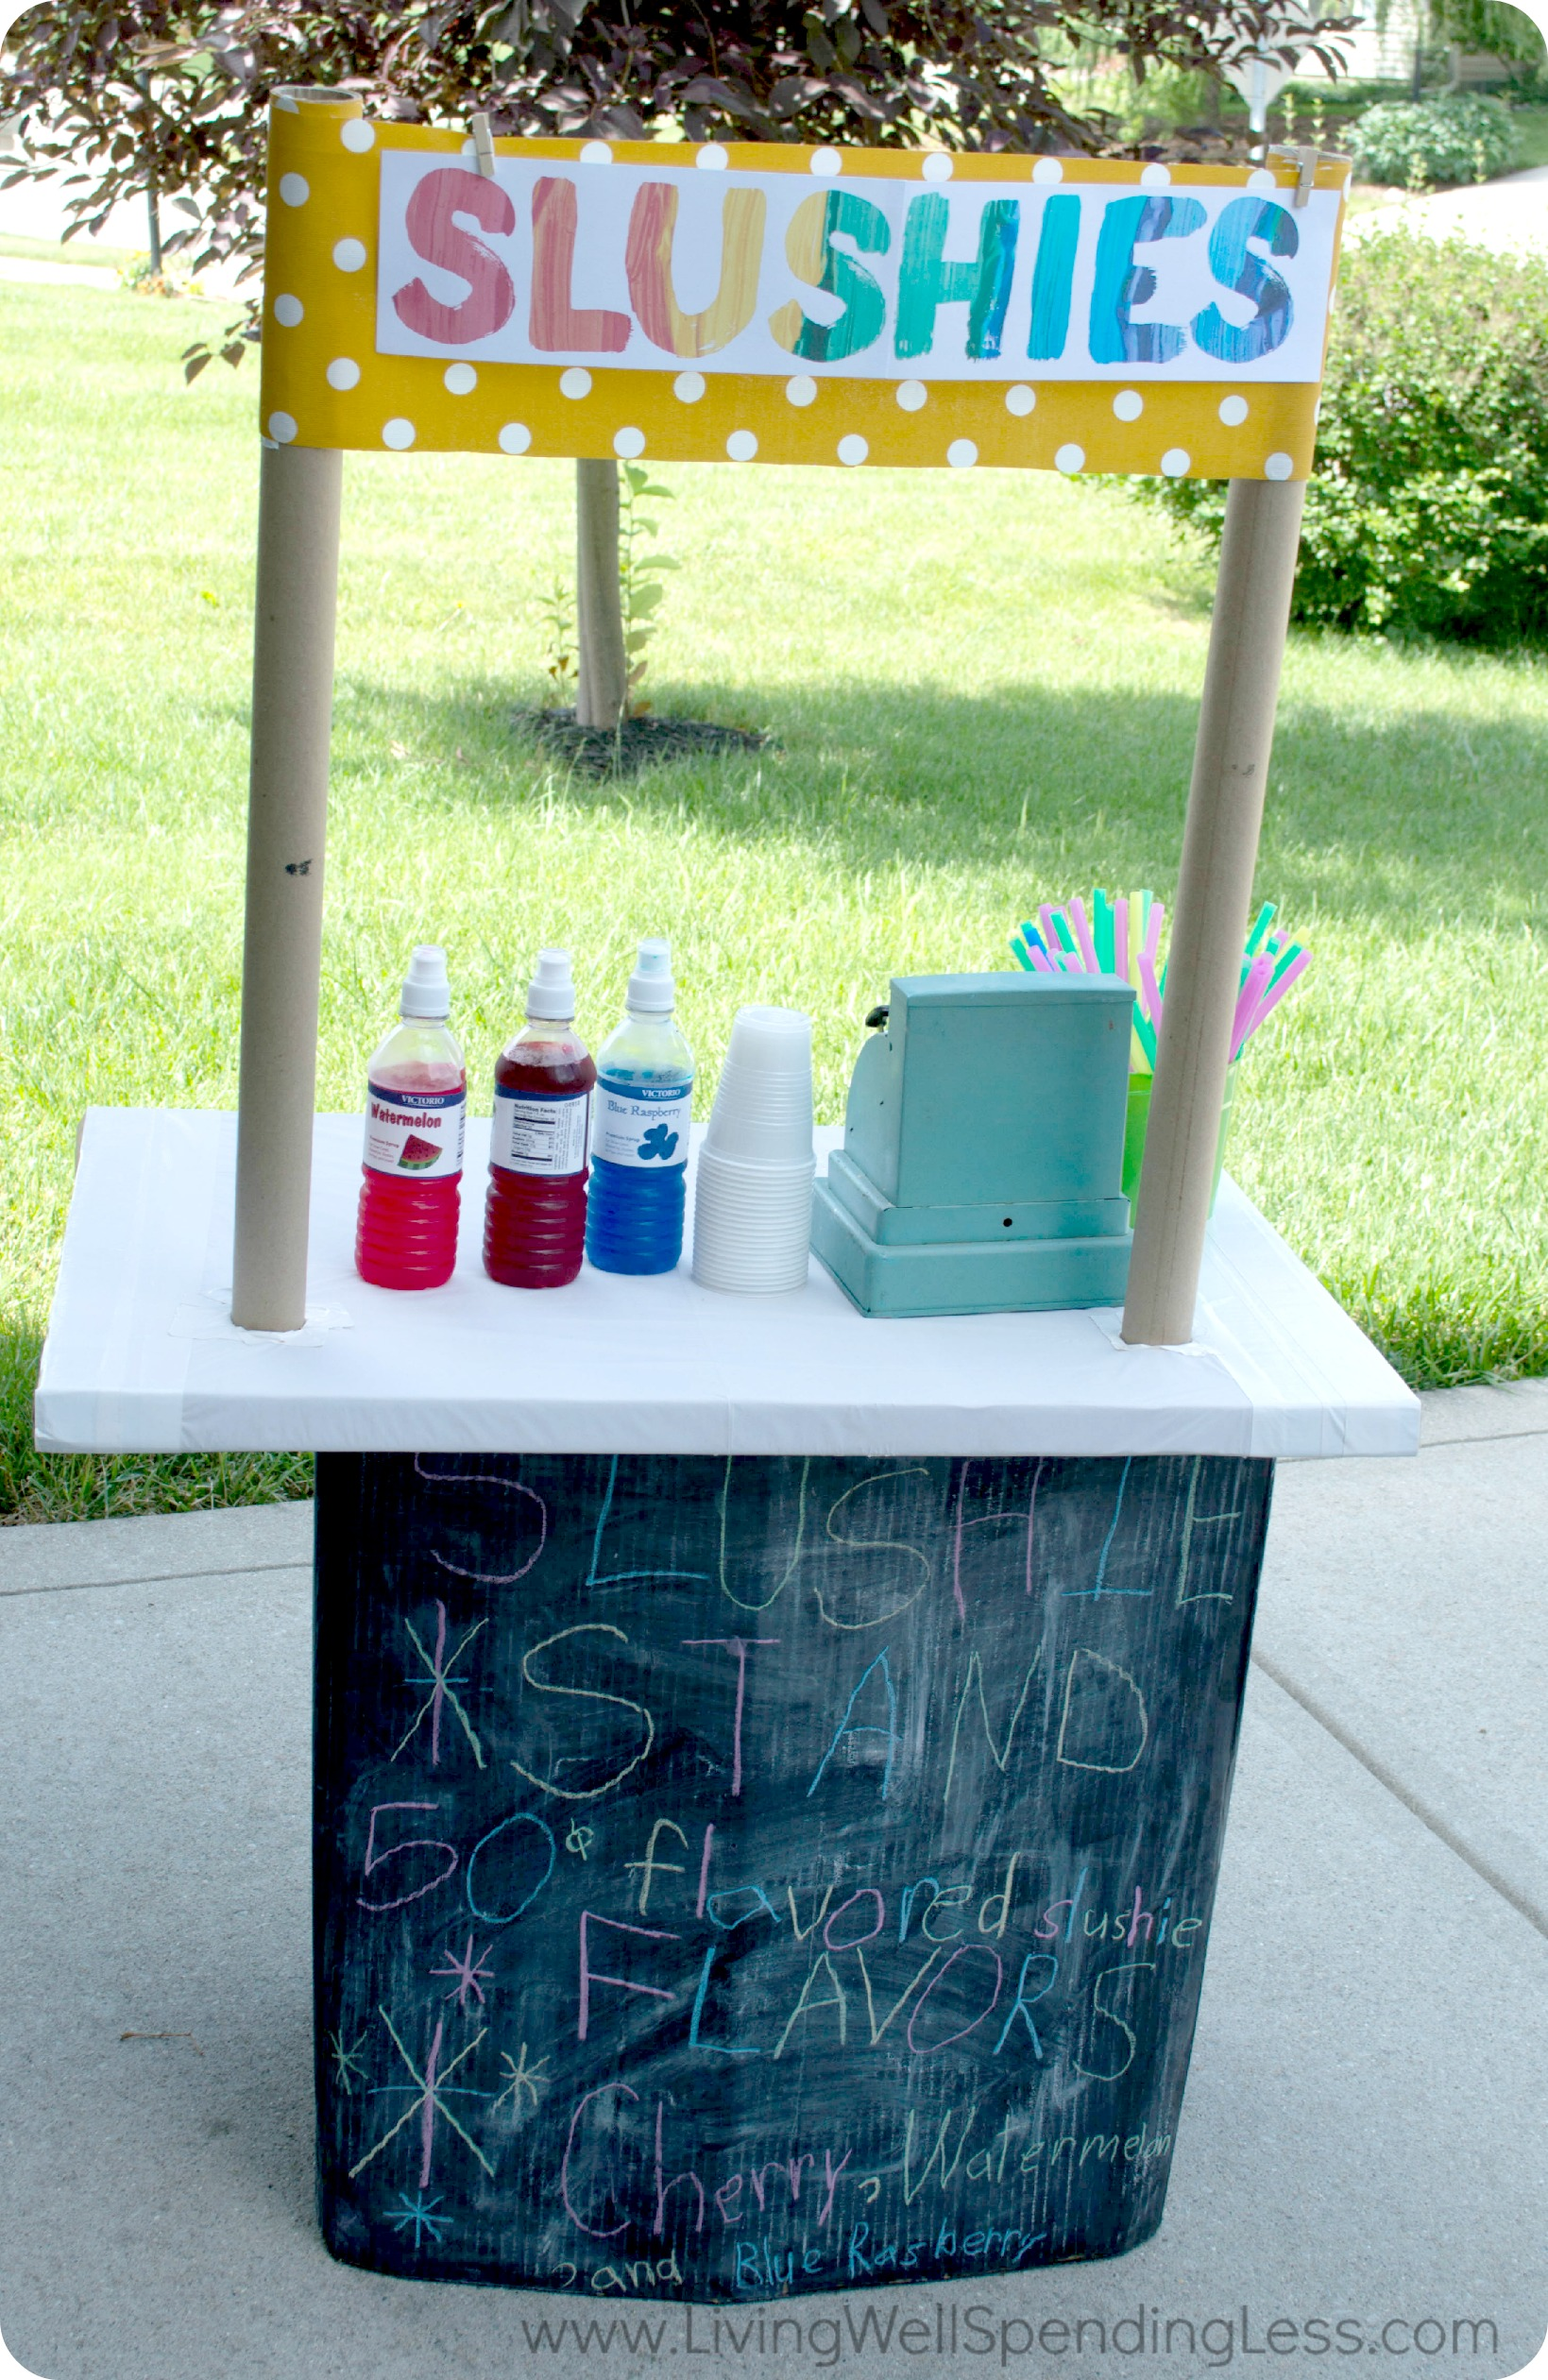 This DIY slushie stand is ready for business